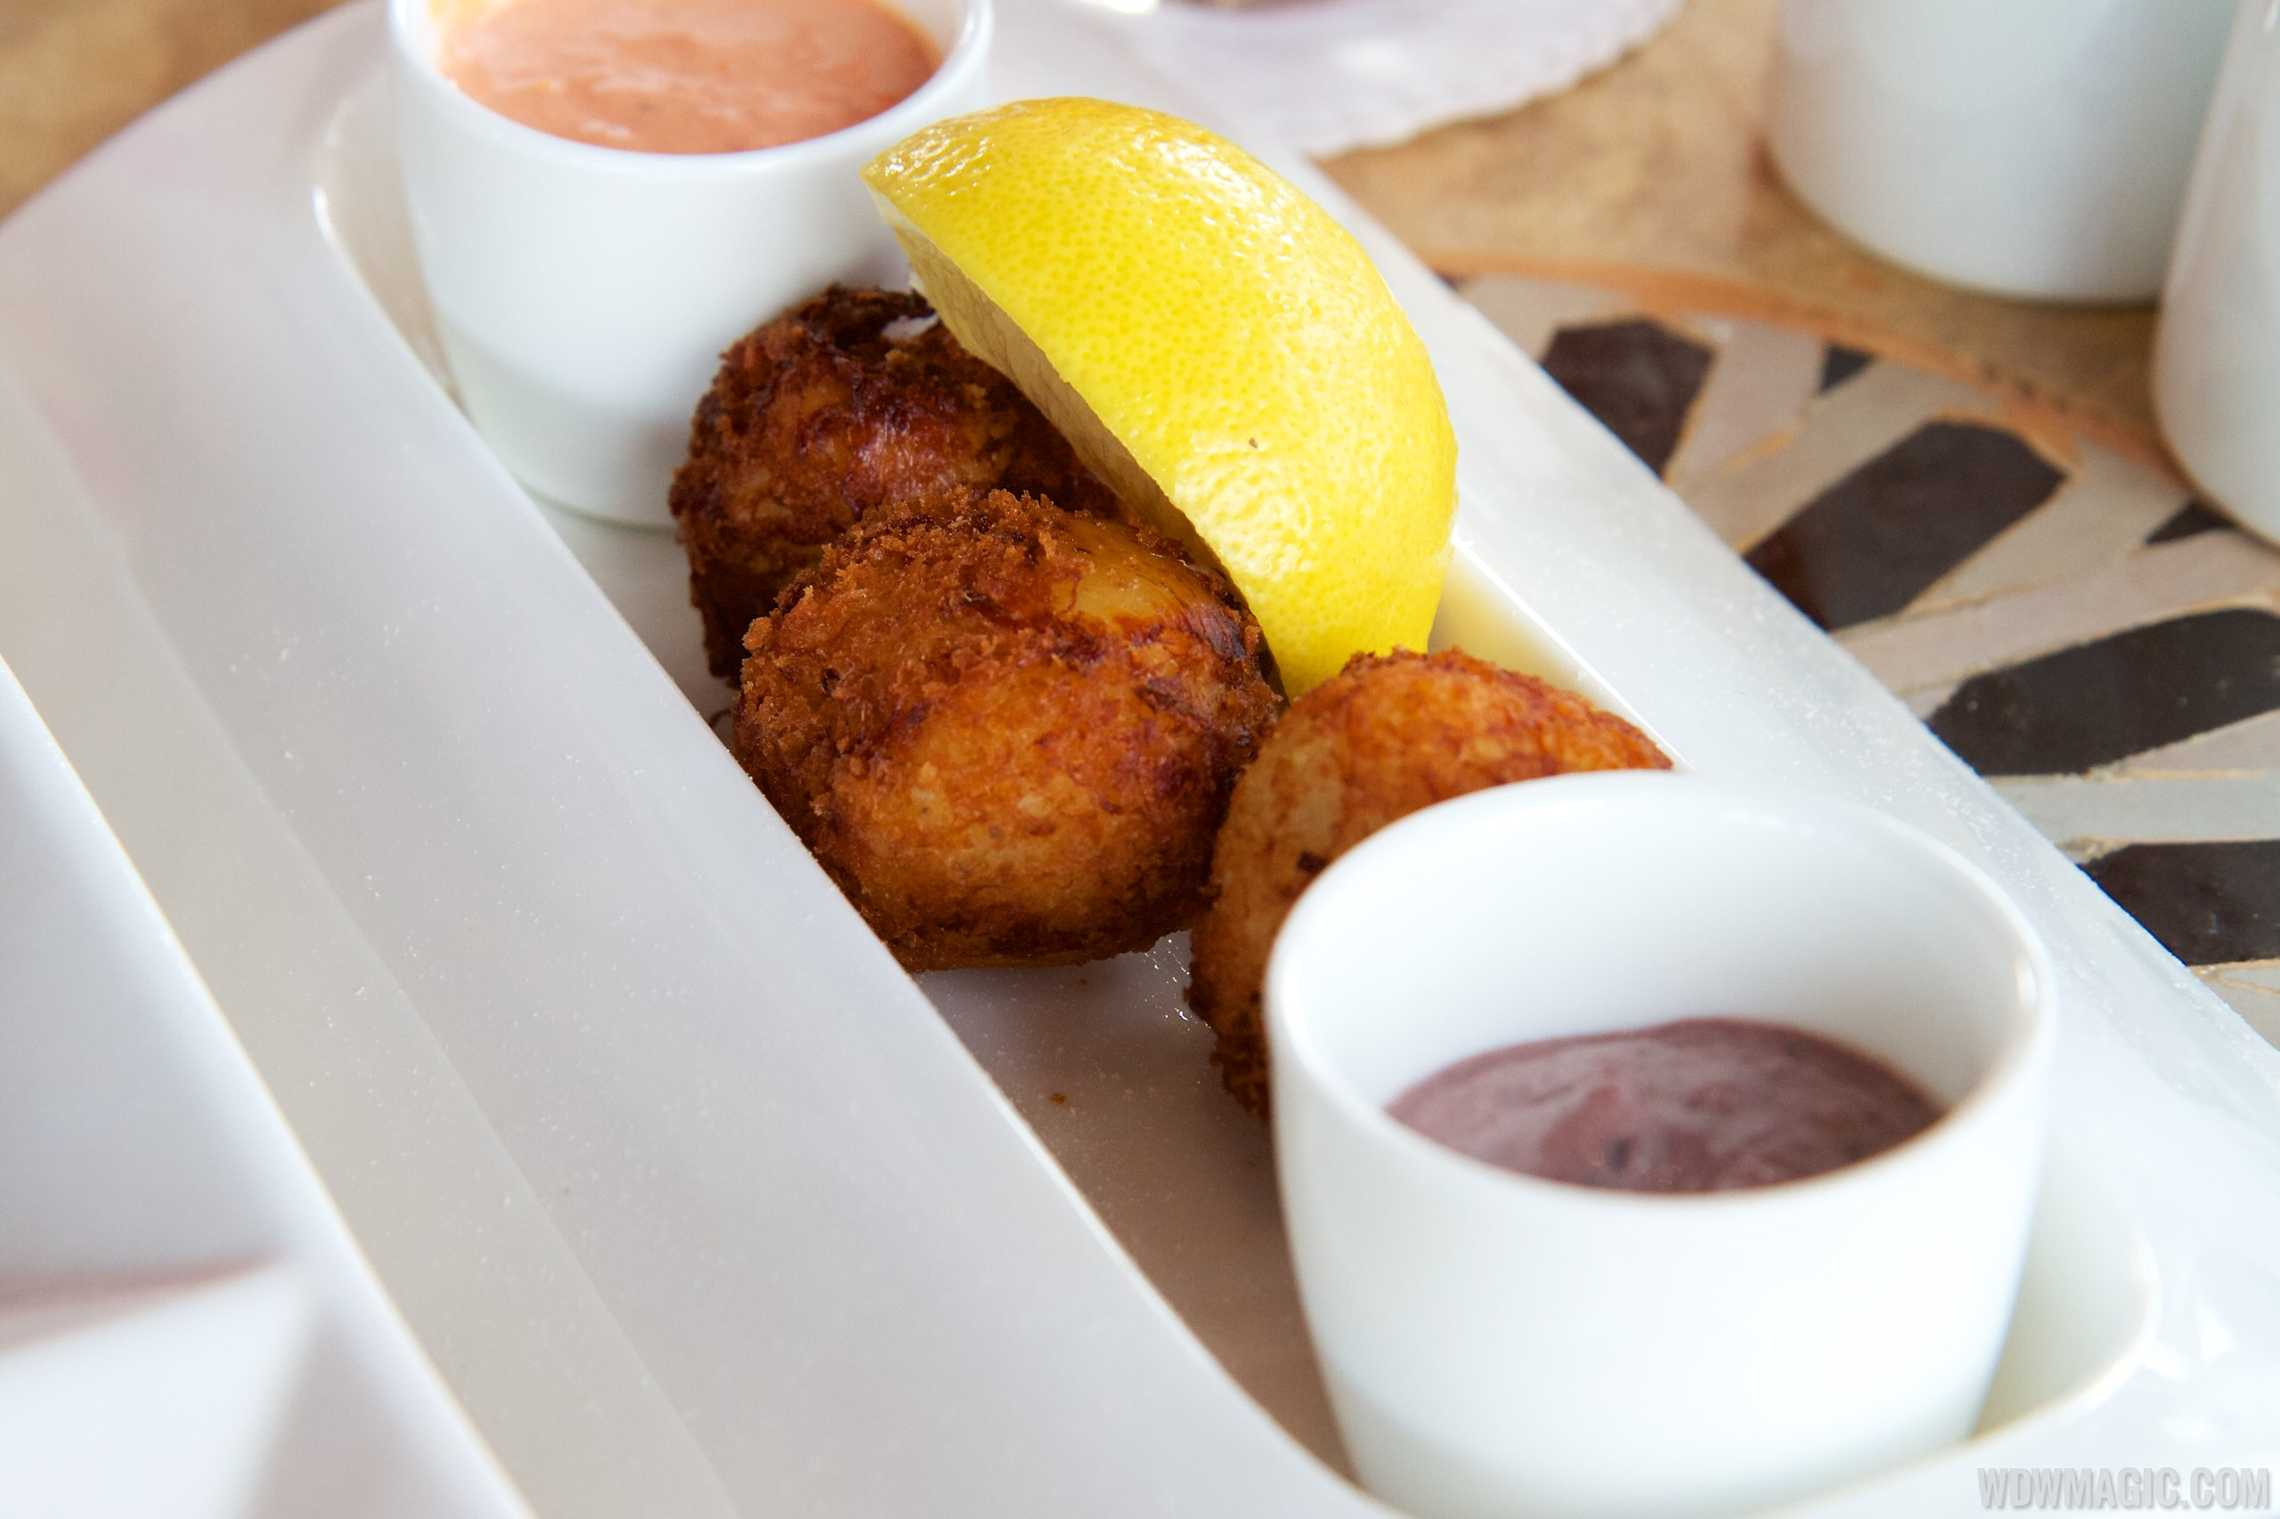 Spice Road Table - Salted Cod Croquettes $10